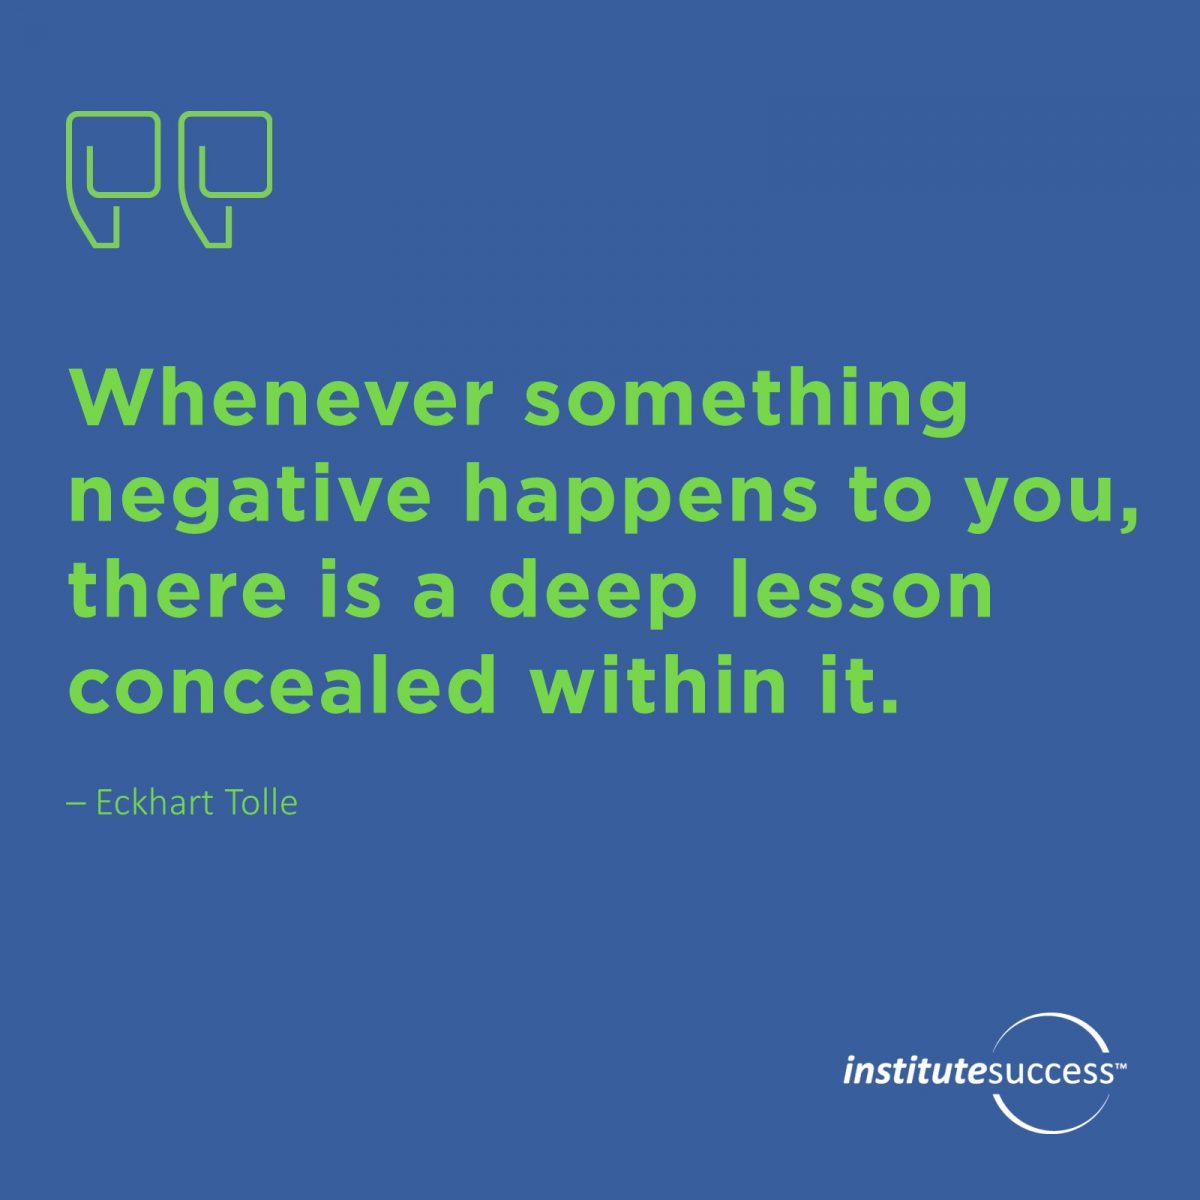 Whenever something negative happens to you, there is a deep lesson concealed within it.Eckhart Tolle